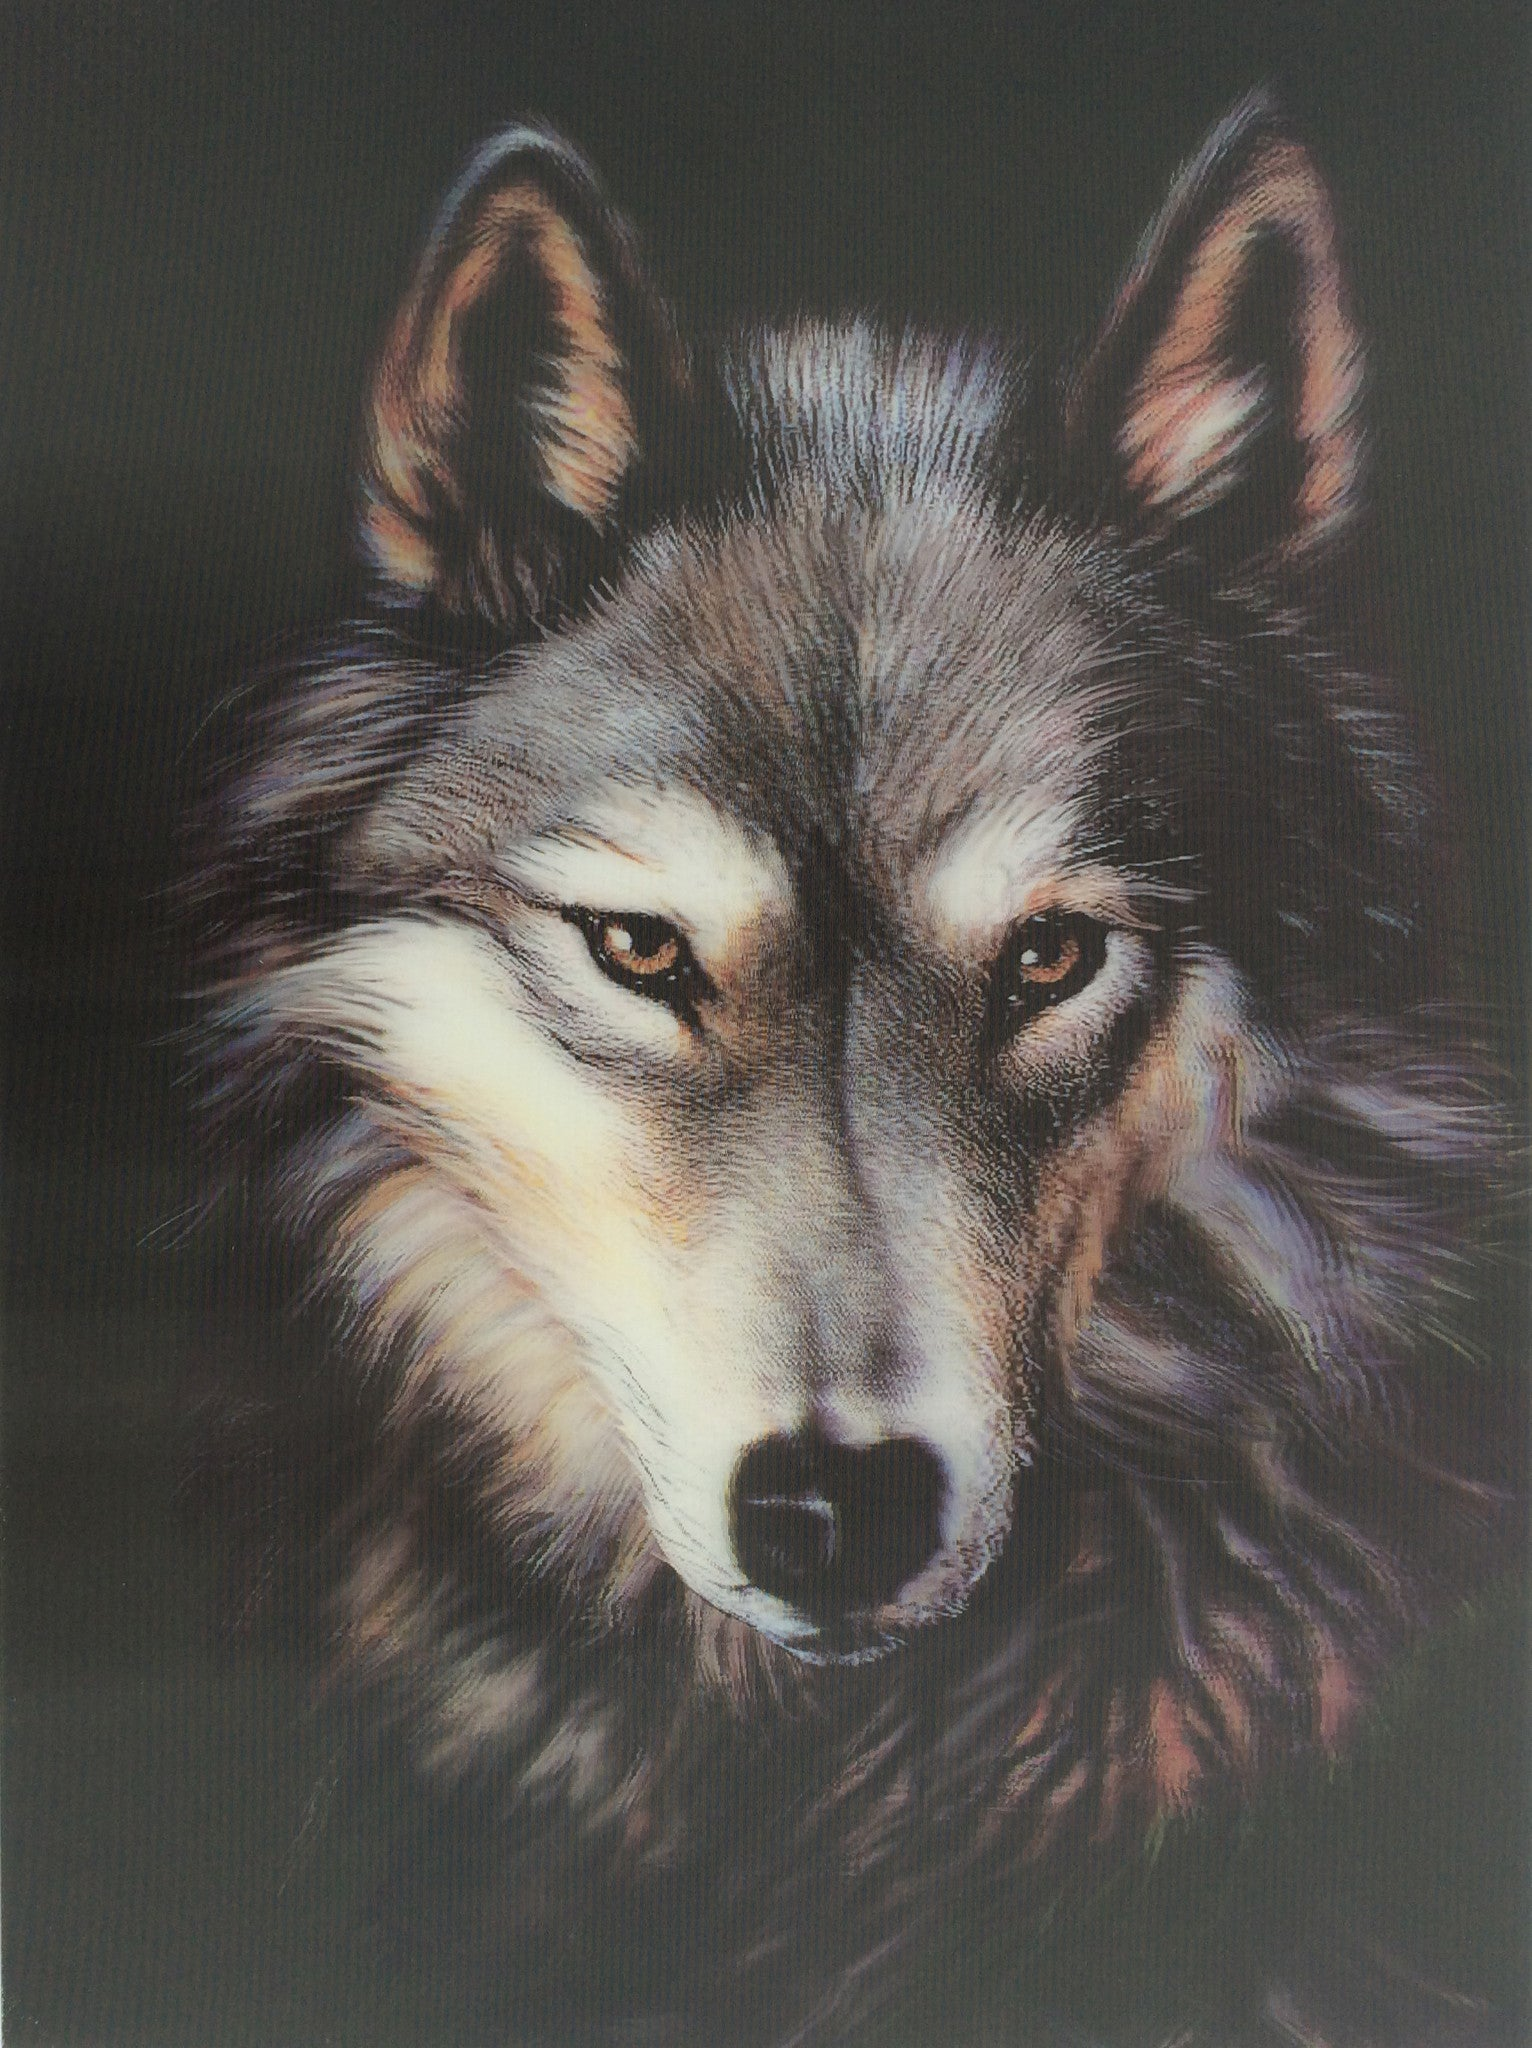 W 1 wolf face 3d picture 3dddpictures com